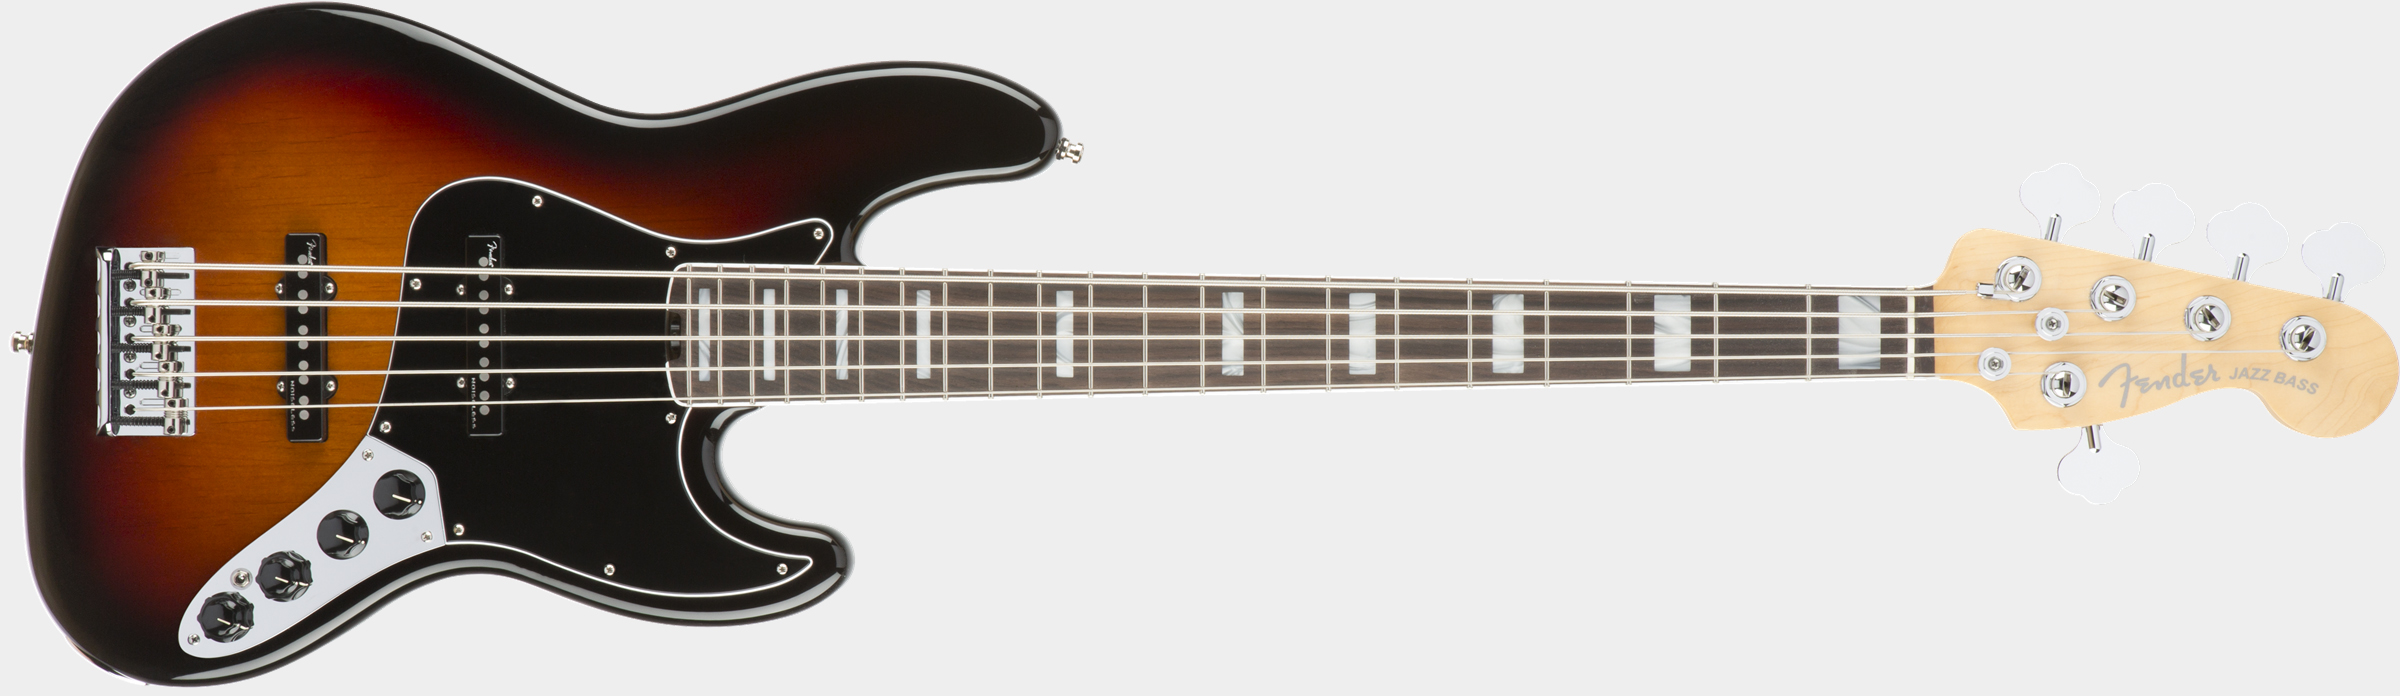 FENDER American Elite Jazz Bass V 3-Color Sunburst